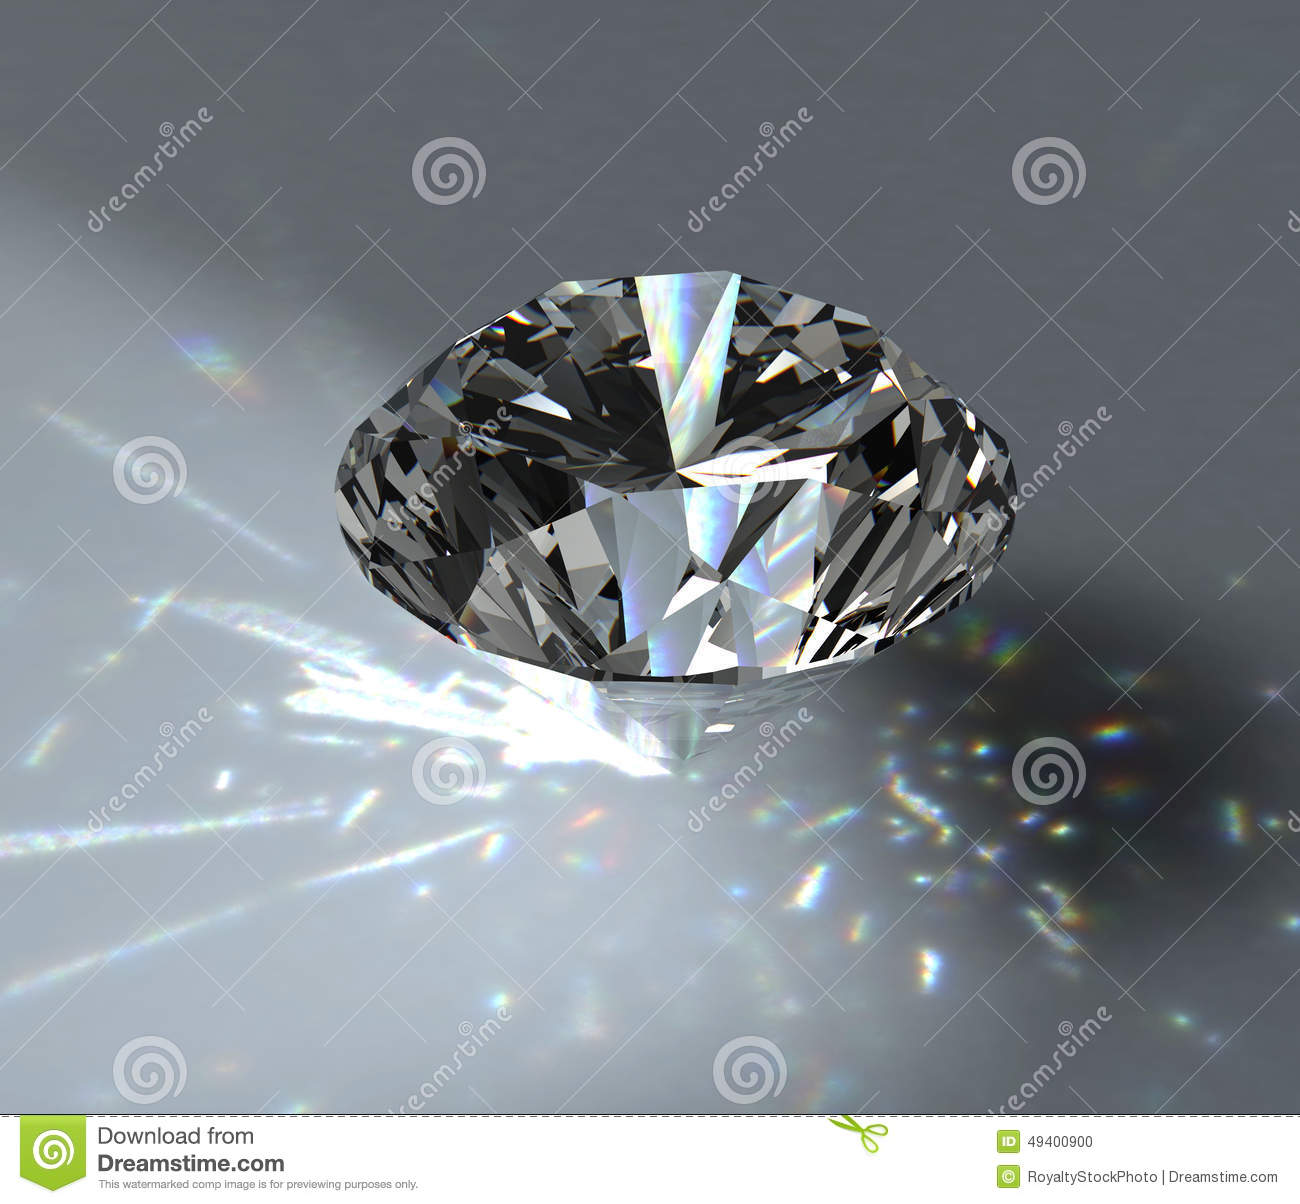 Download Diamant stock abbildung. Illustration von kristall, edelstein - 49400900